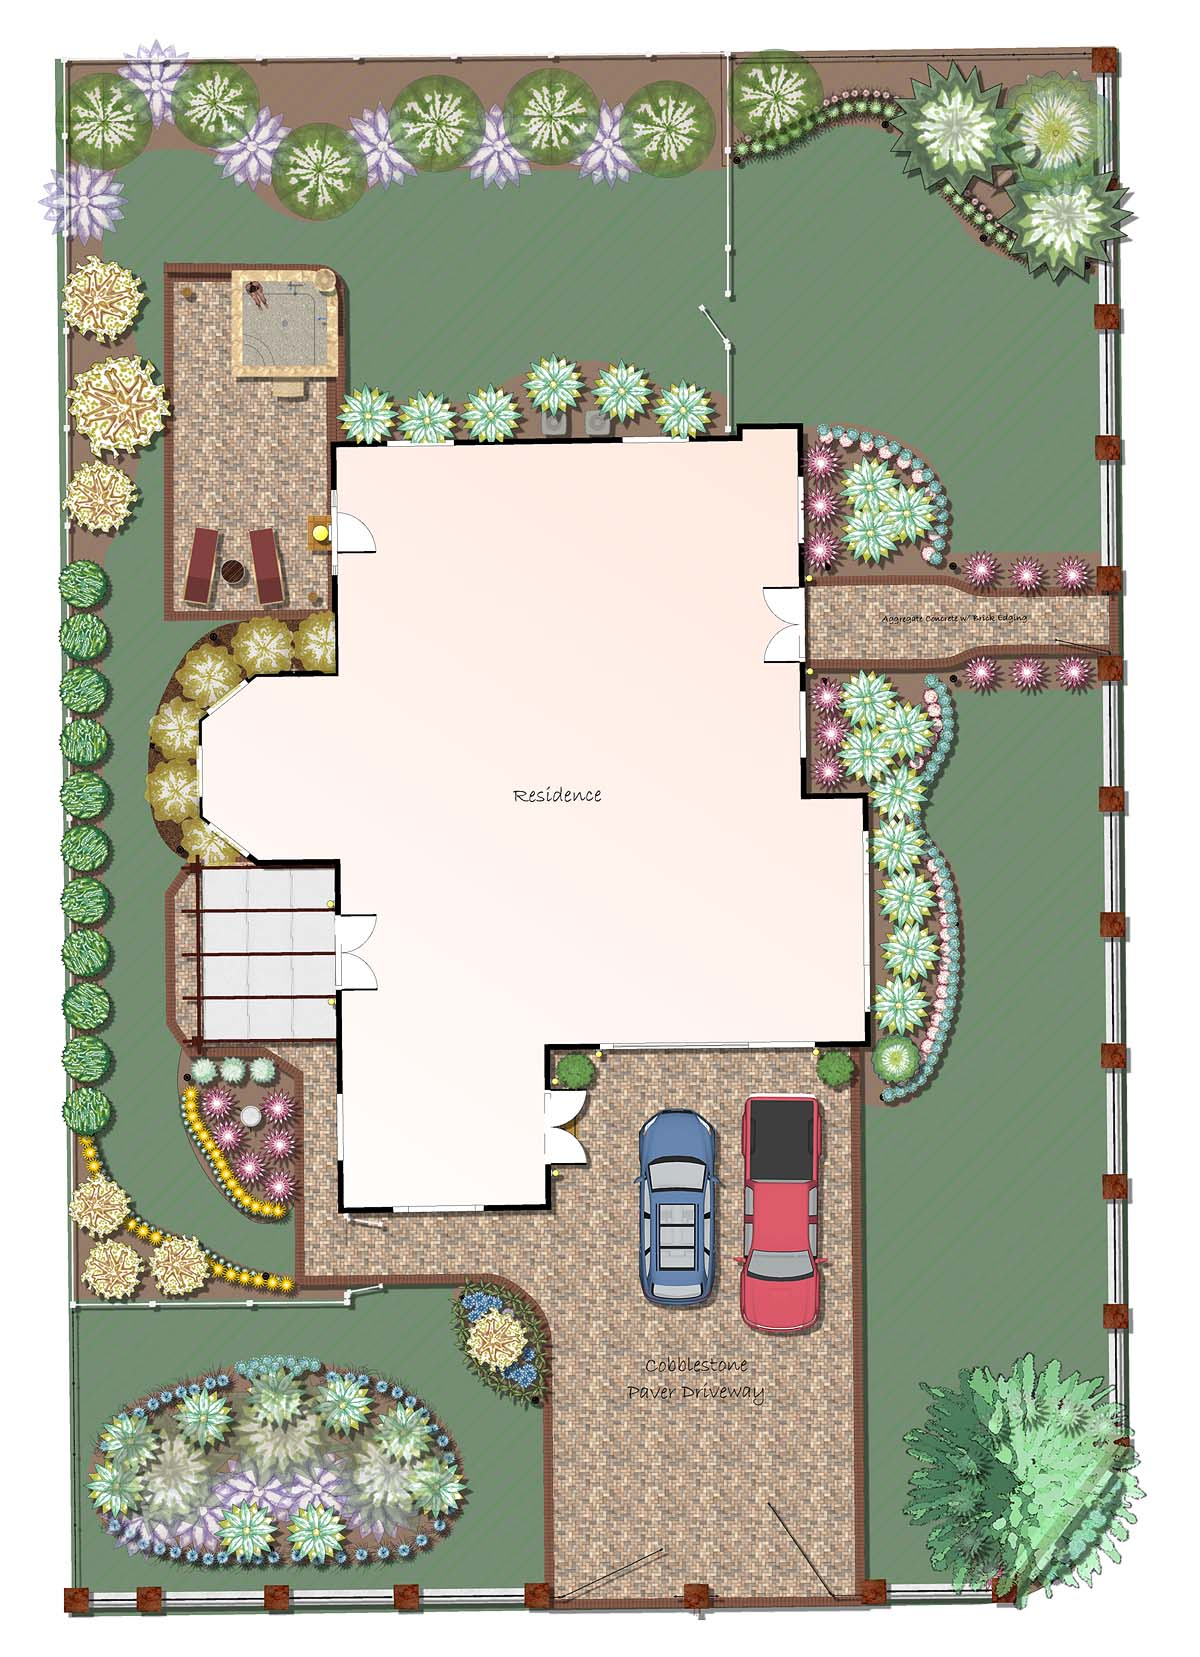 Landscape Design Plan6